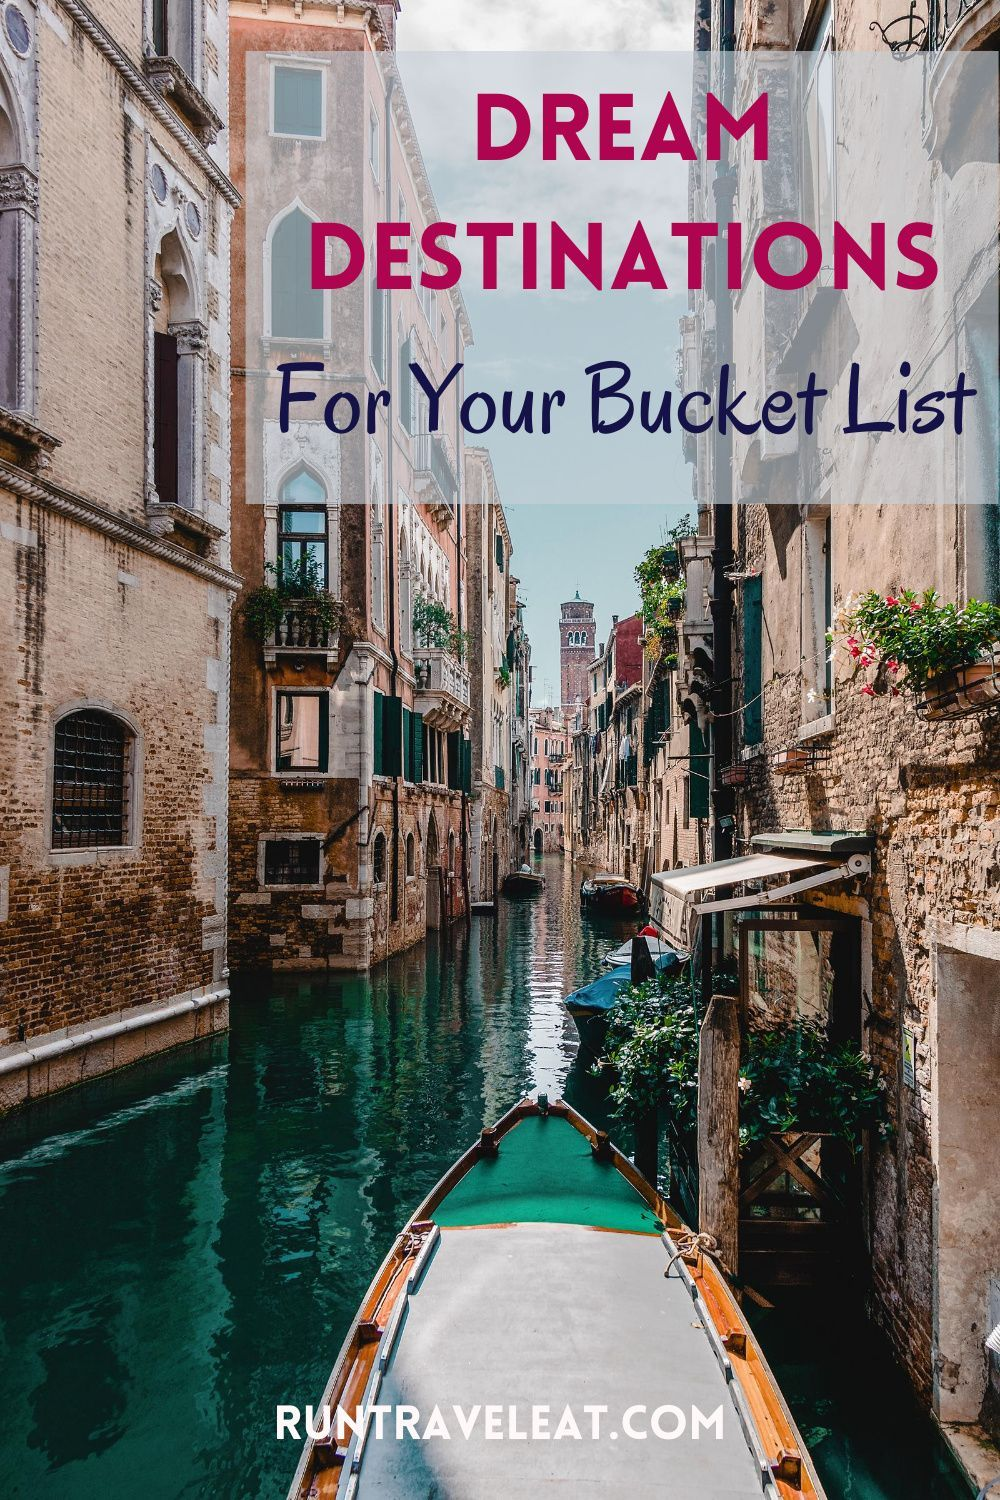 Are you eager to travel again? Here are the top places you should be flying to next as soon as you can! From beautiful white sandy beaches to old European cities. #travelinspo #dreamdestinations #travelbucketlist #exploremore #travelblogger